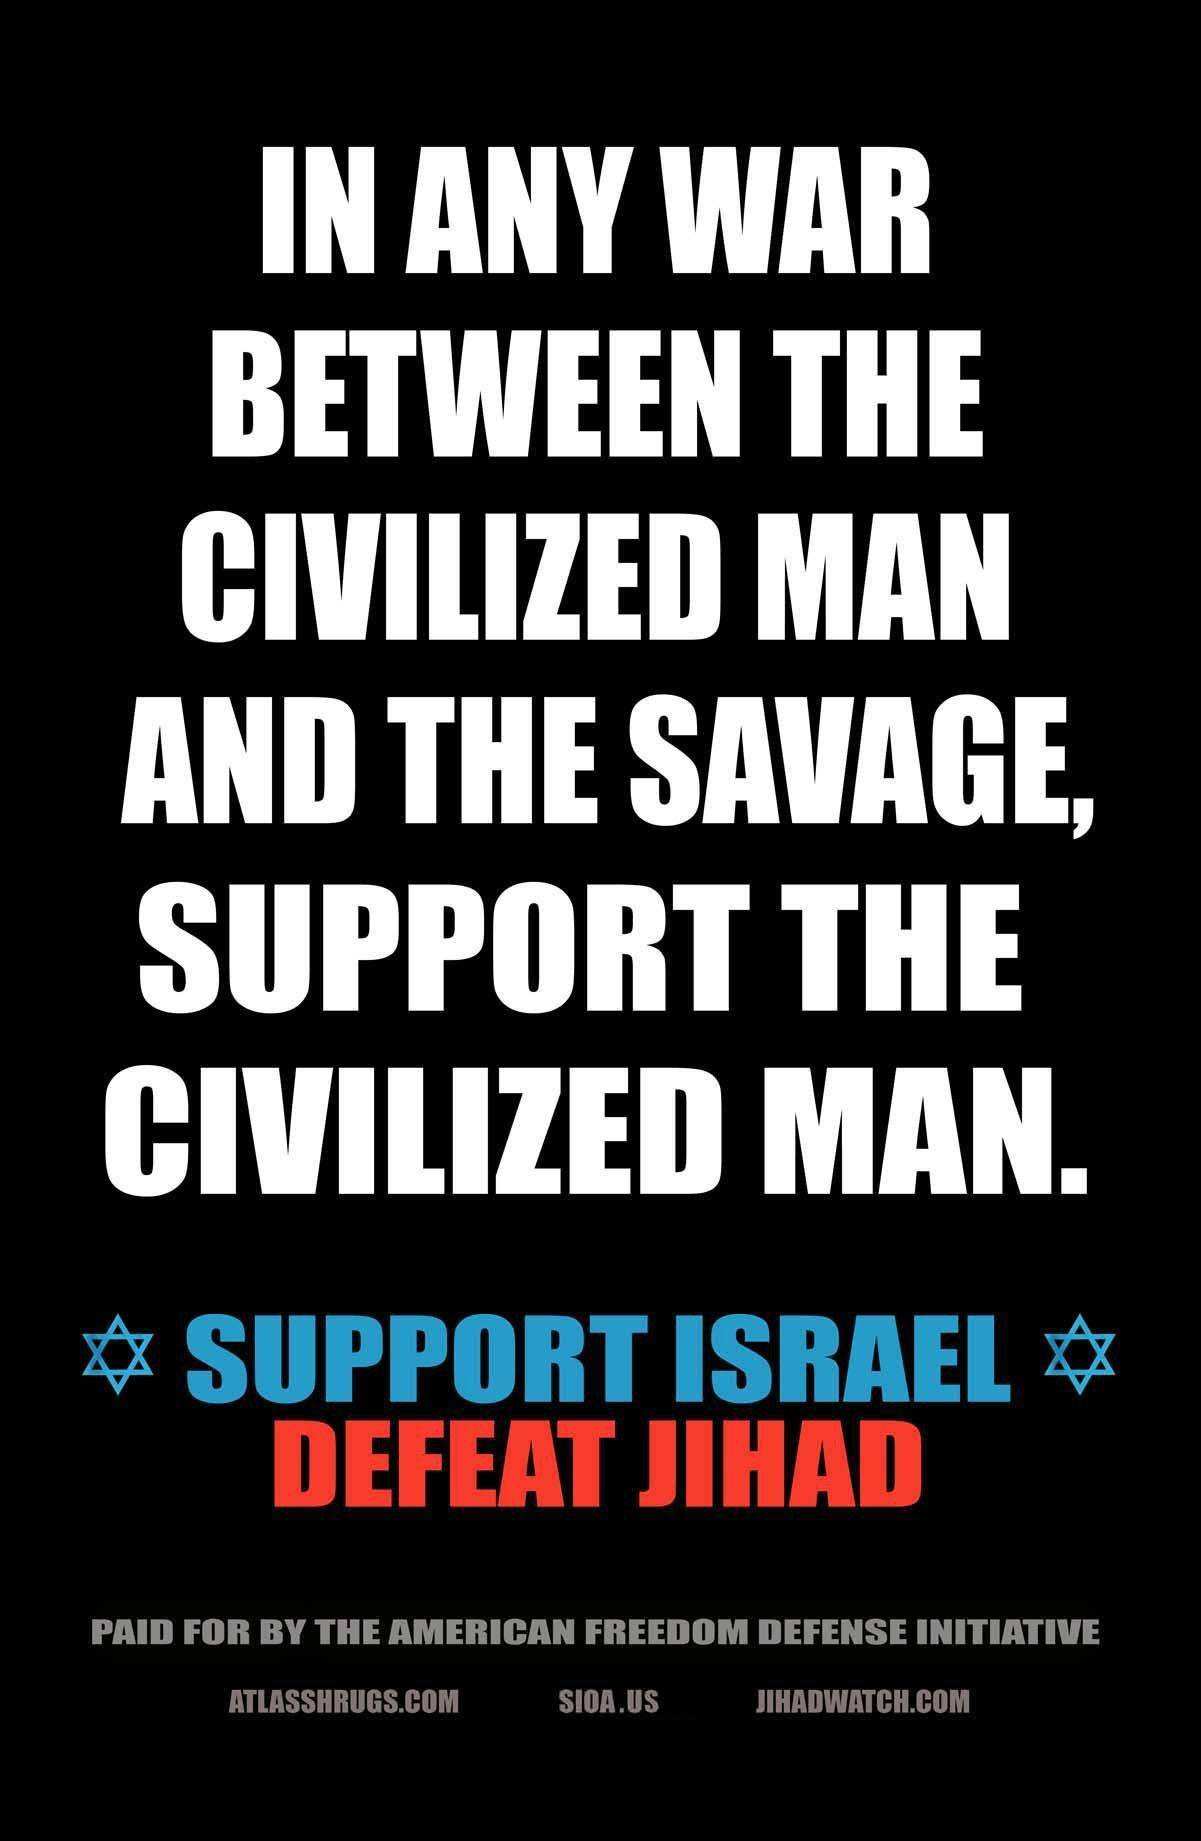 This photo provided by Pamela Geller, executive director of the American Freedom Defense Initiative, is an example of the posters appearing in the New York subway. Mona Eltahawy, an Egyptian-born U.S. columnist, has been arrested on charges of spray-painting over one of the posters equating Muslim radicals with savages.